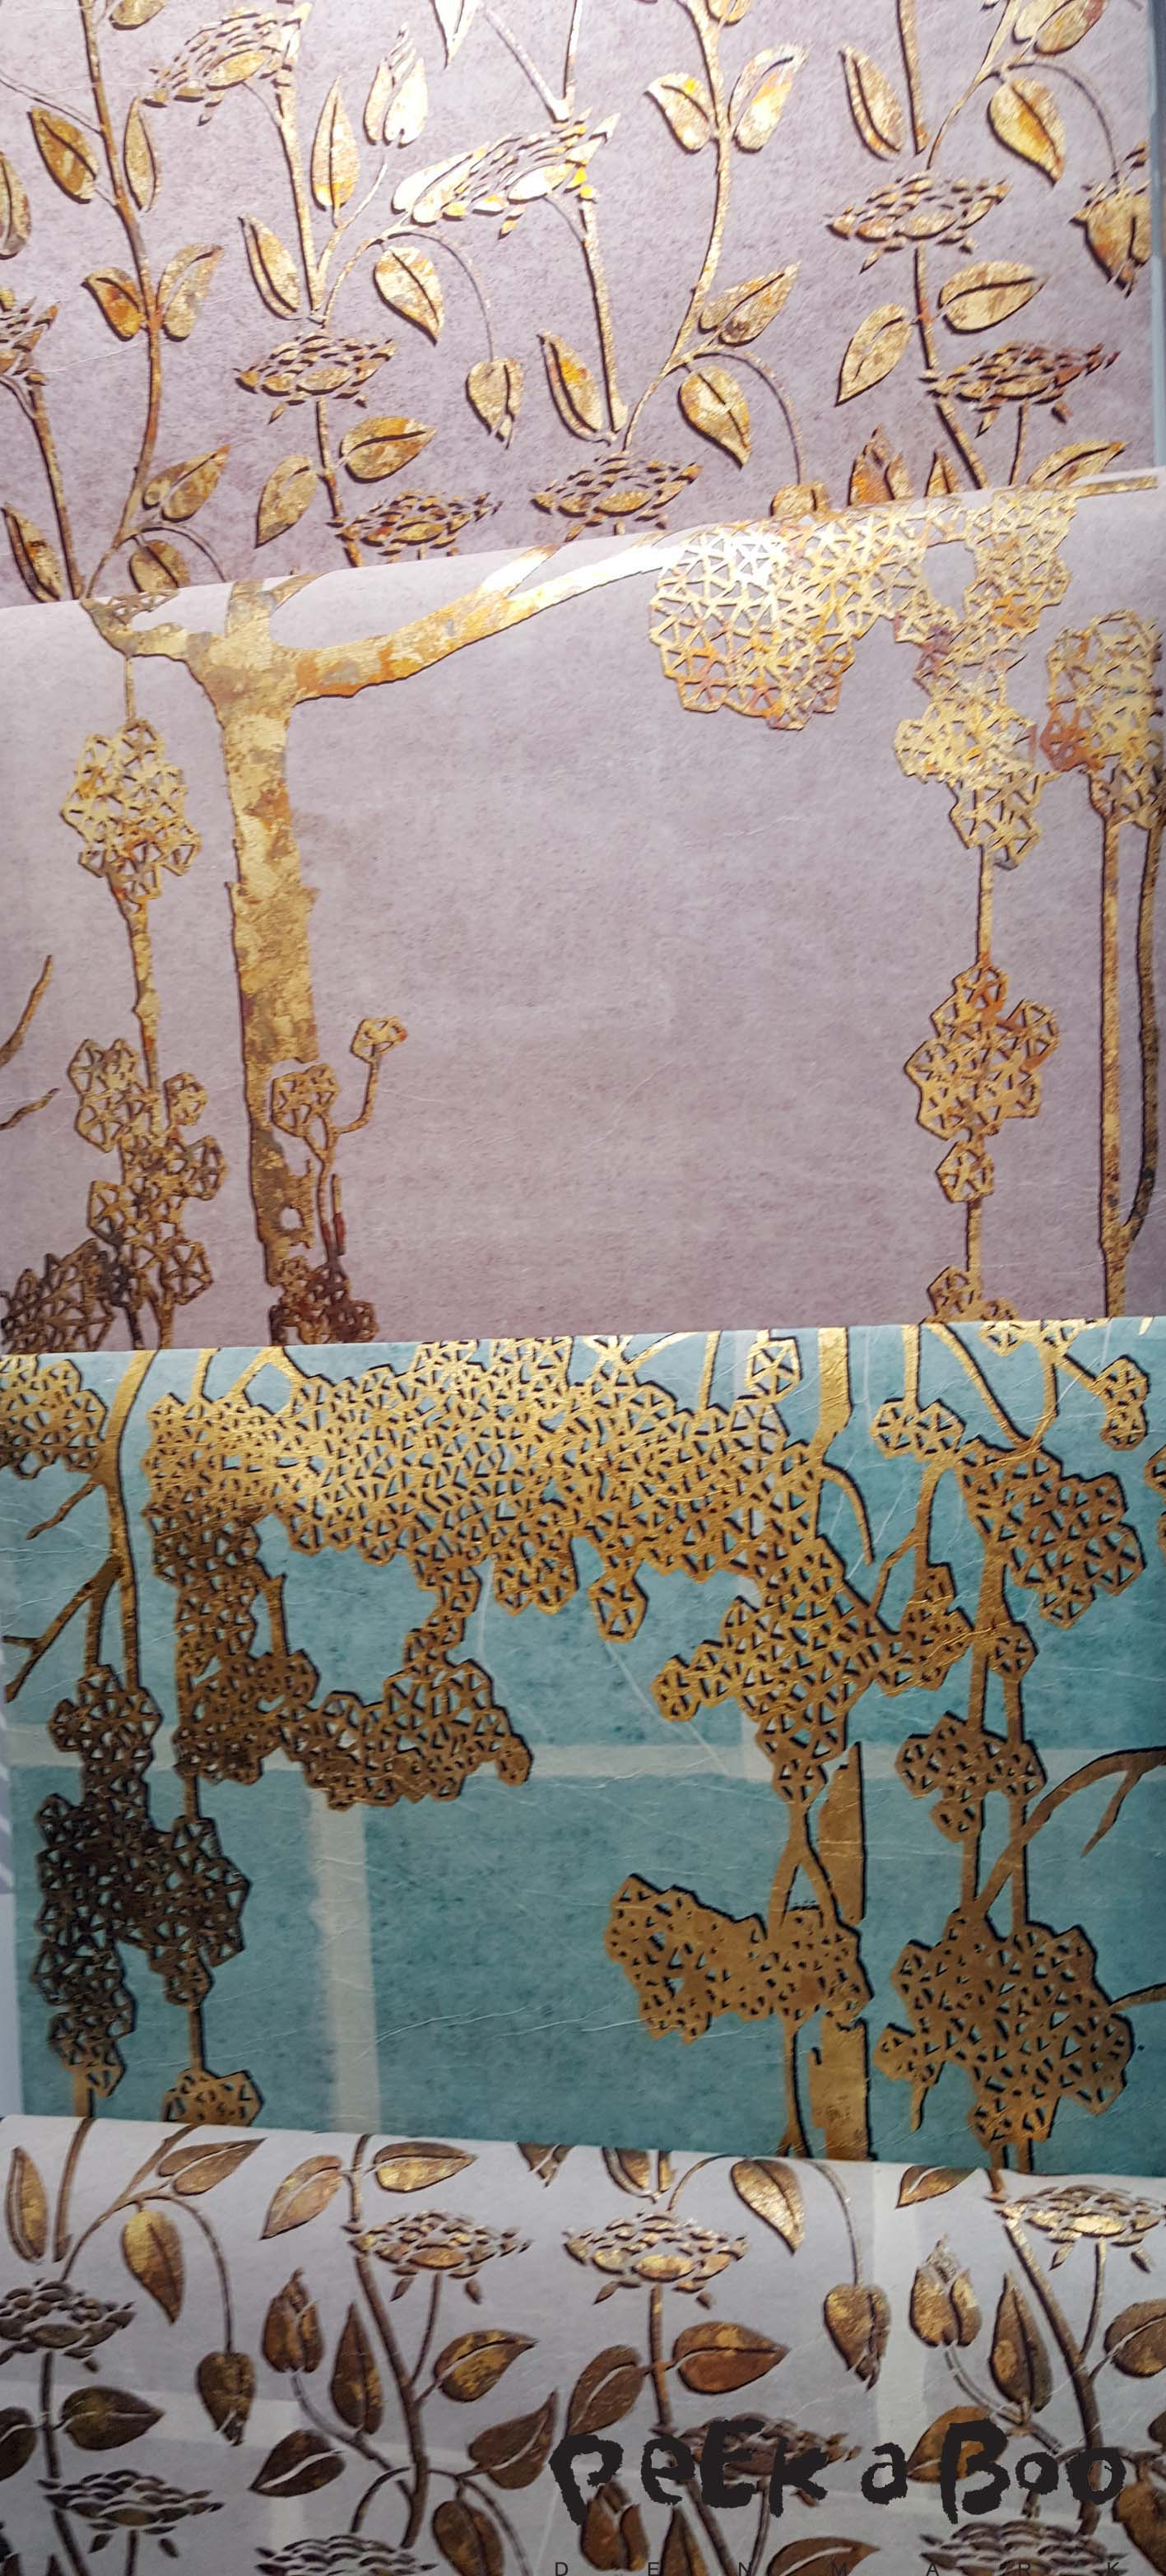 Japanese washi paper from Ikazaki Shachu inc. The gentle feel of the handmade washi paper combined with the innovative design and powerful look of gilding done with gold leaf.